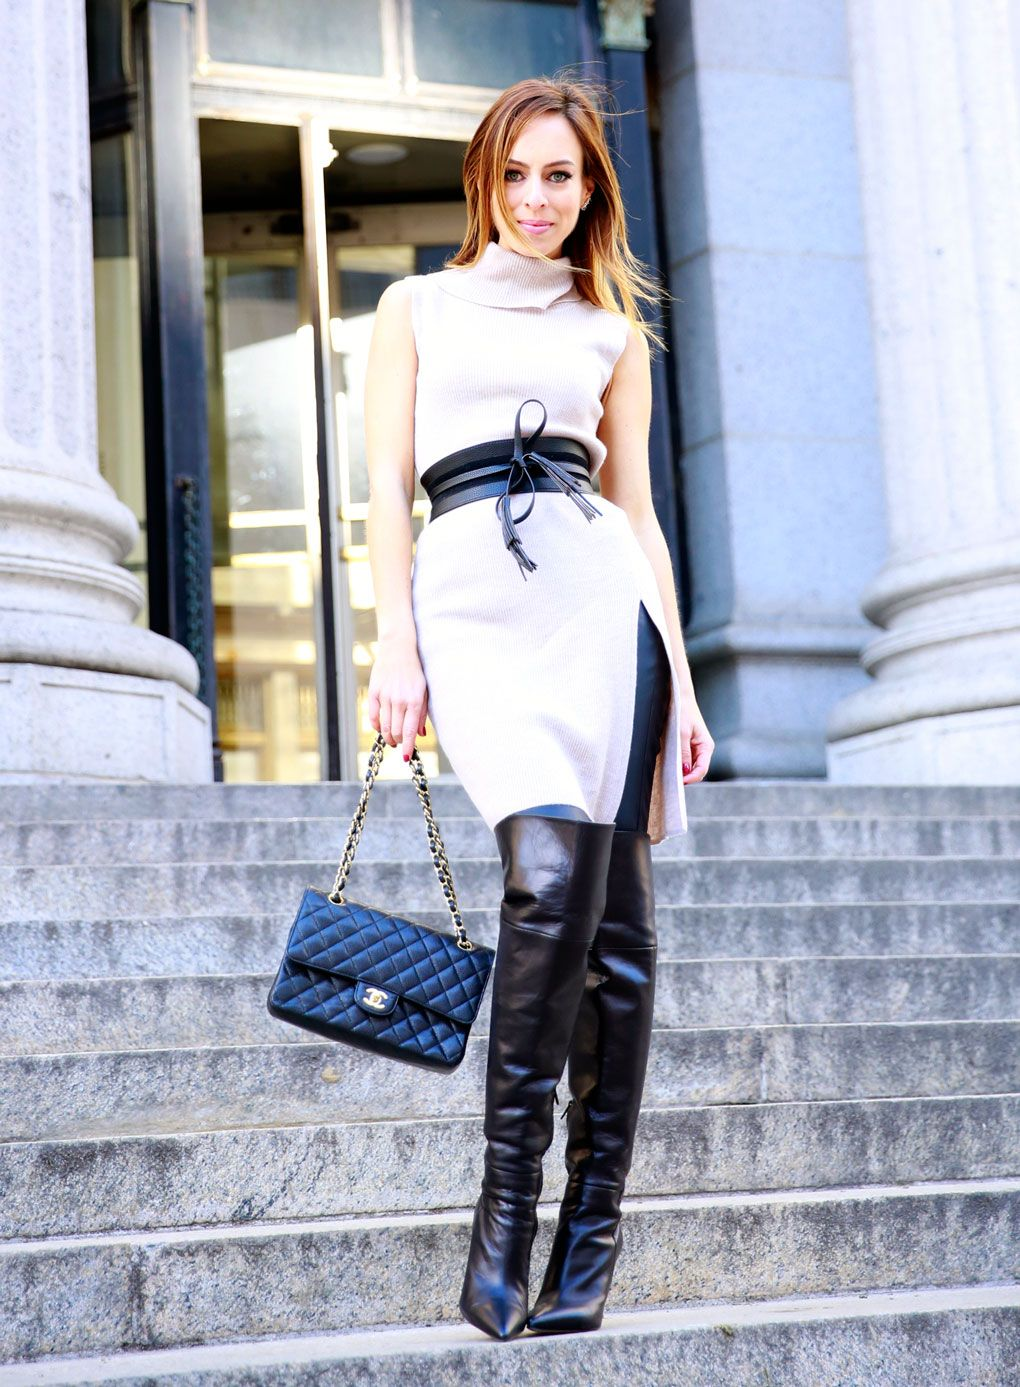 Sydne-Style-shows-leather-leggings-trend-at-new-york ...